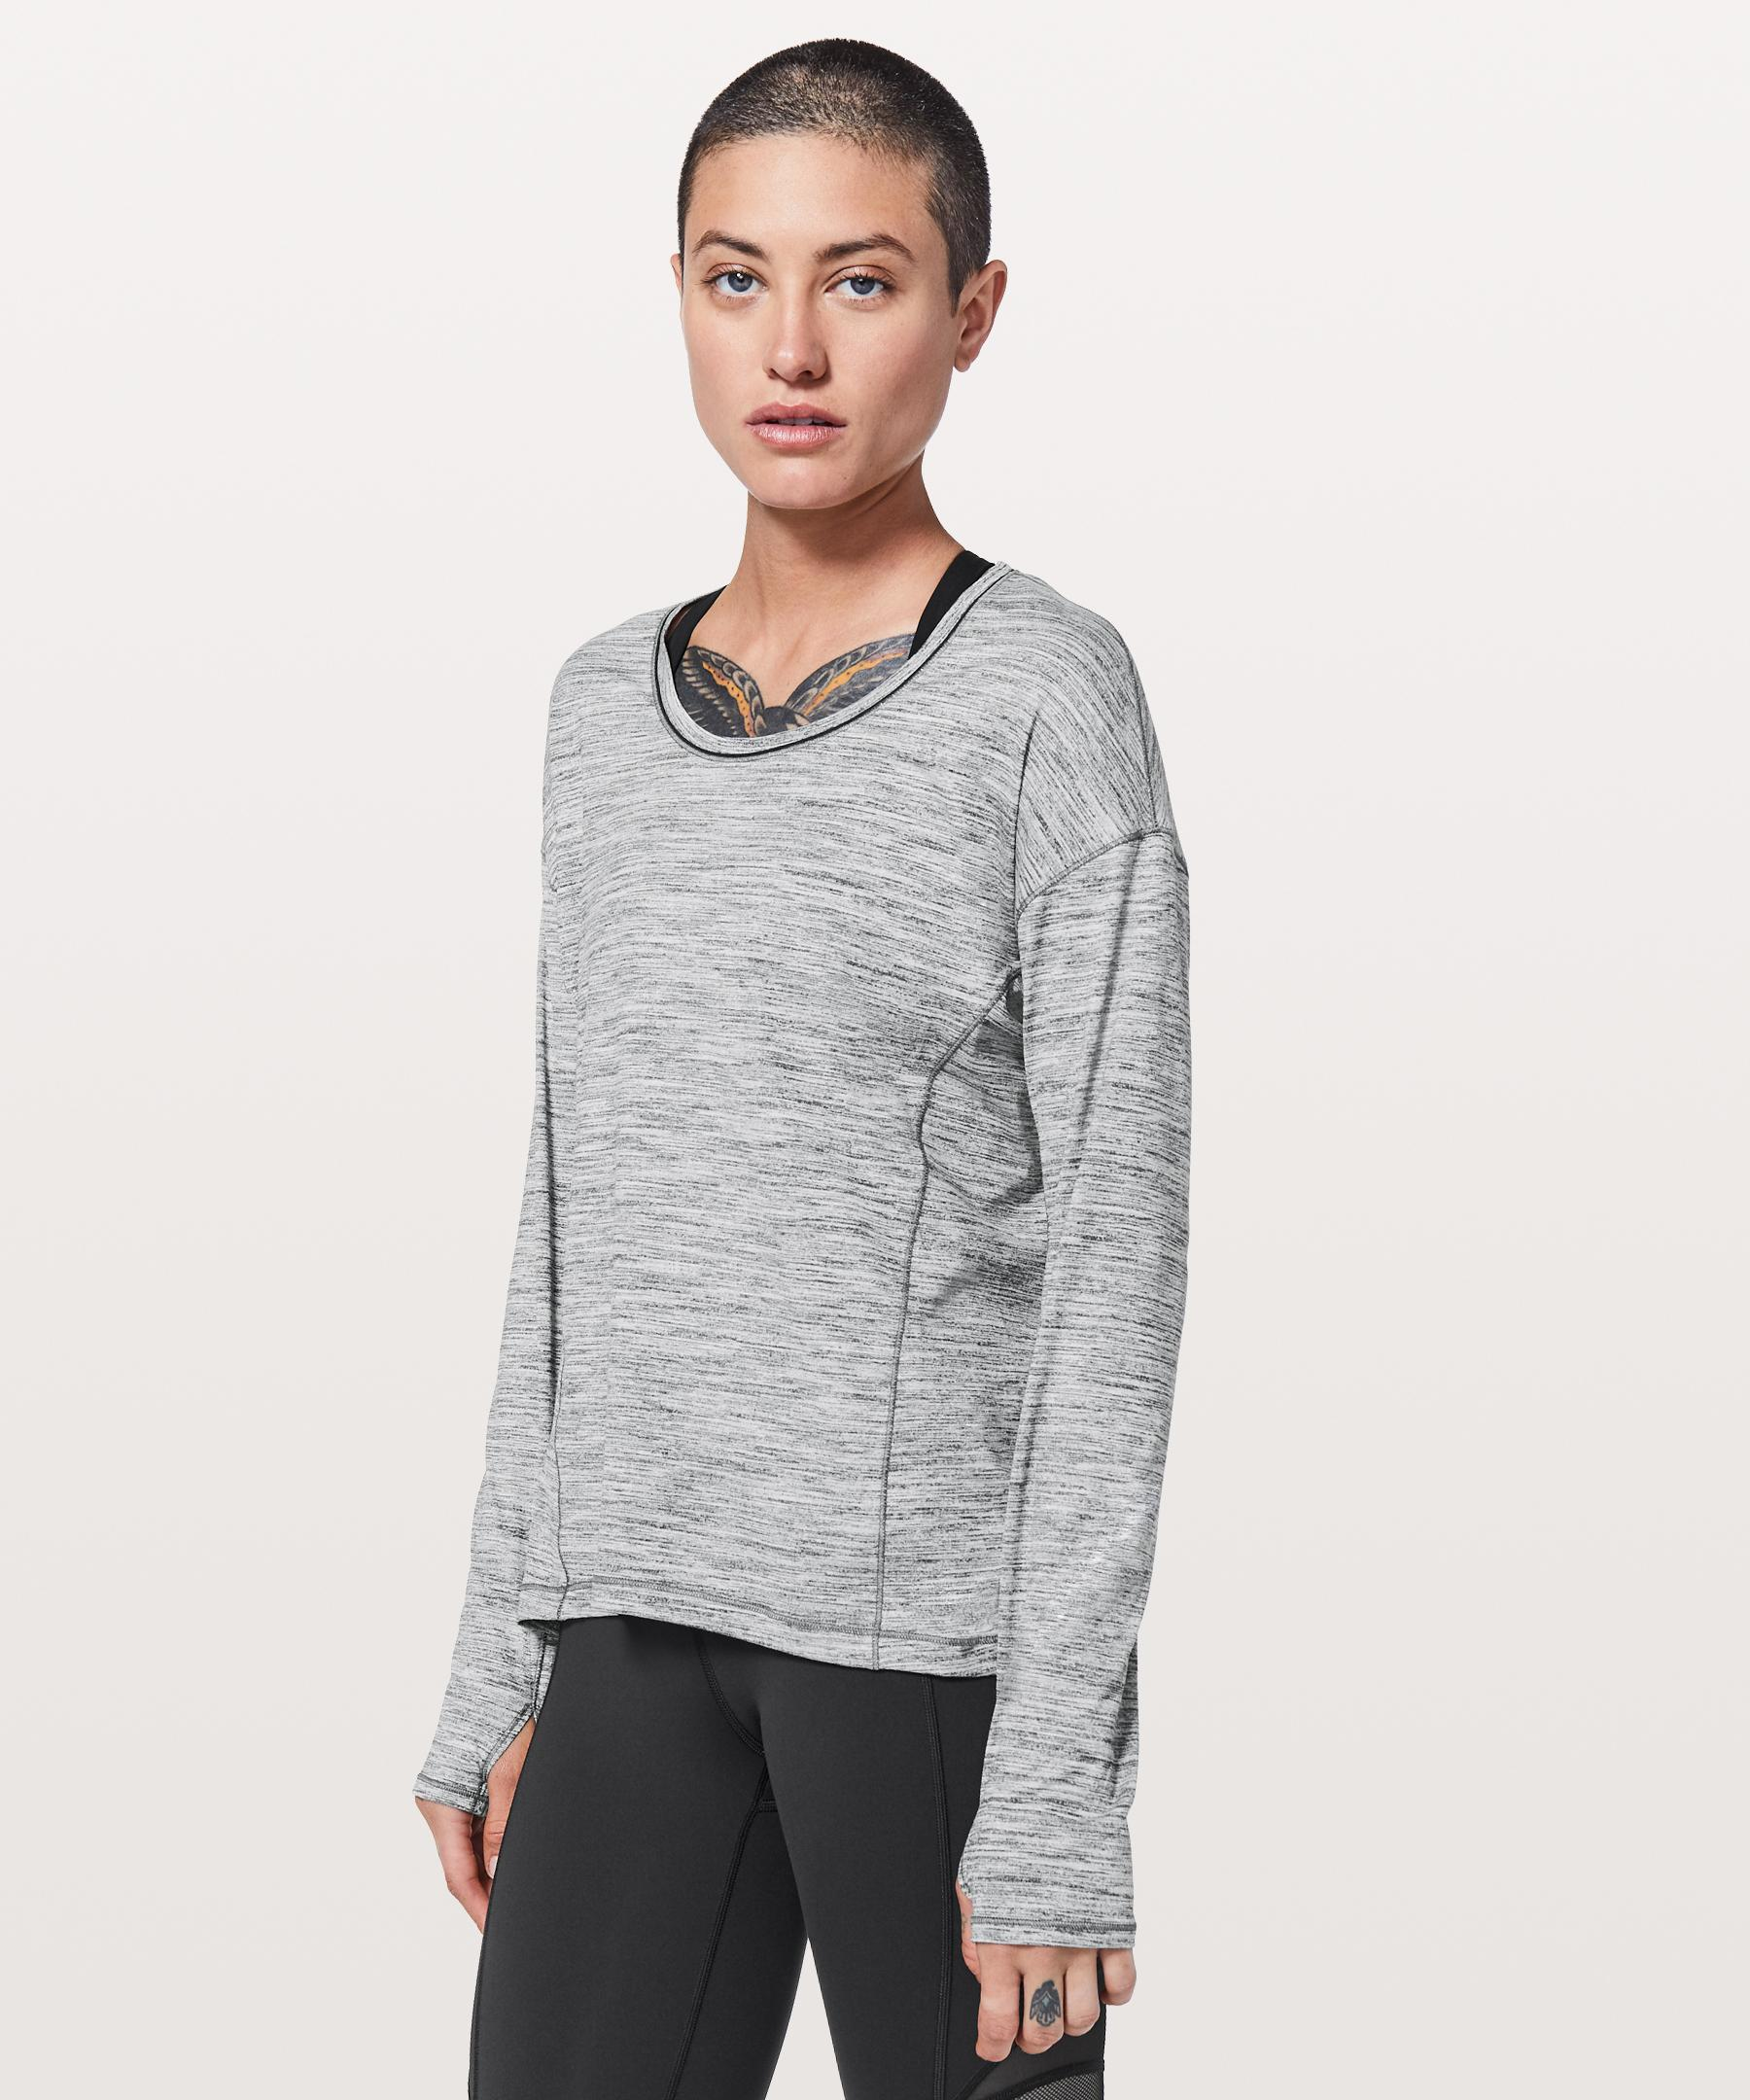 0680c8e207 lululemon athletica Sweat Embrace Long Sleeve in Gray - Save 42% - Lyst